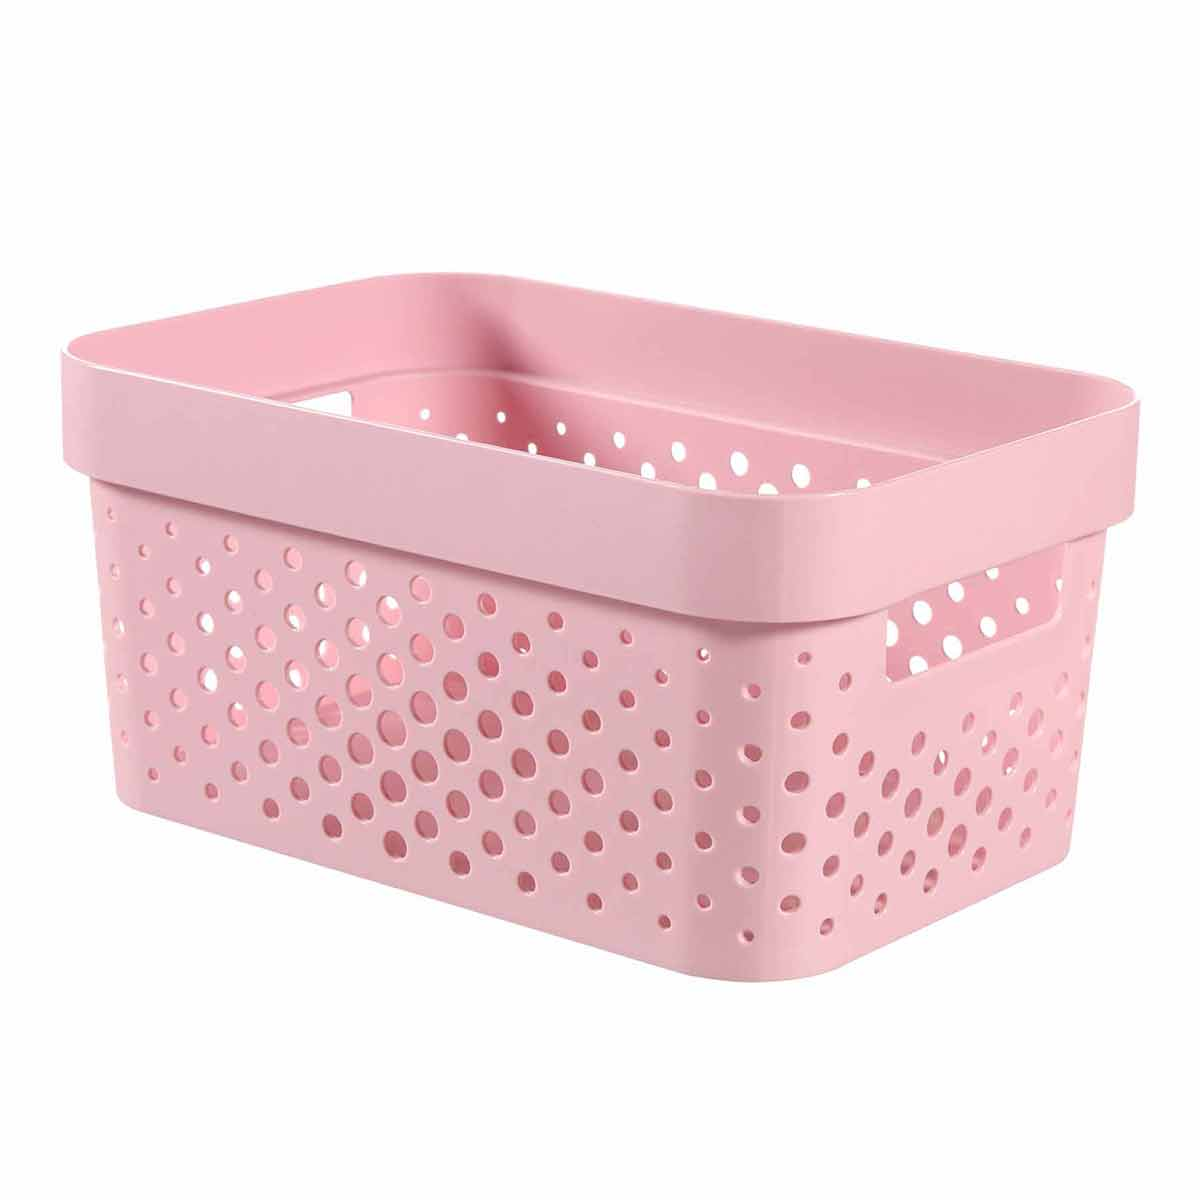 Curver Infinity Recycled Storage Basket 4.5 Litre, Pink